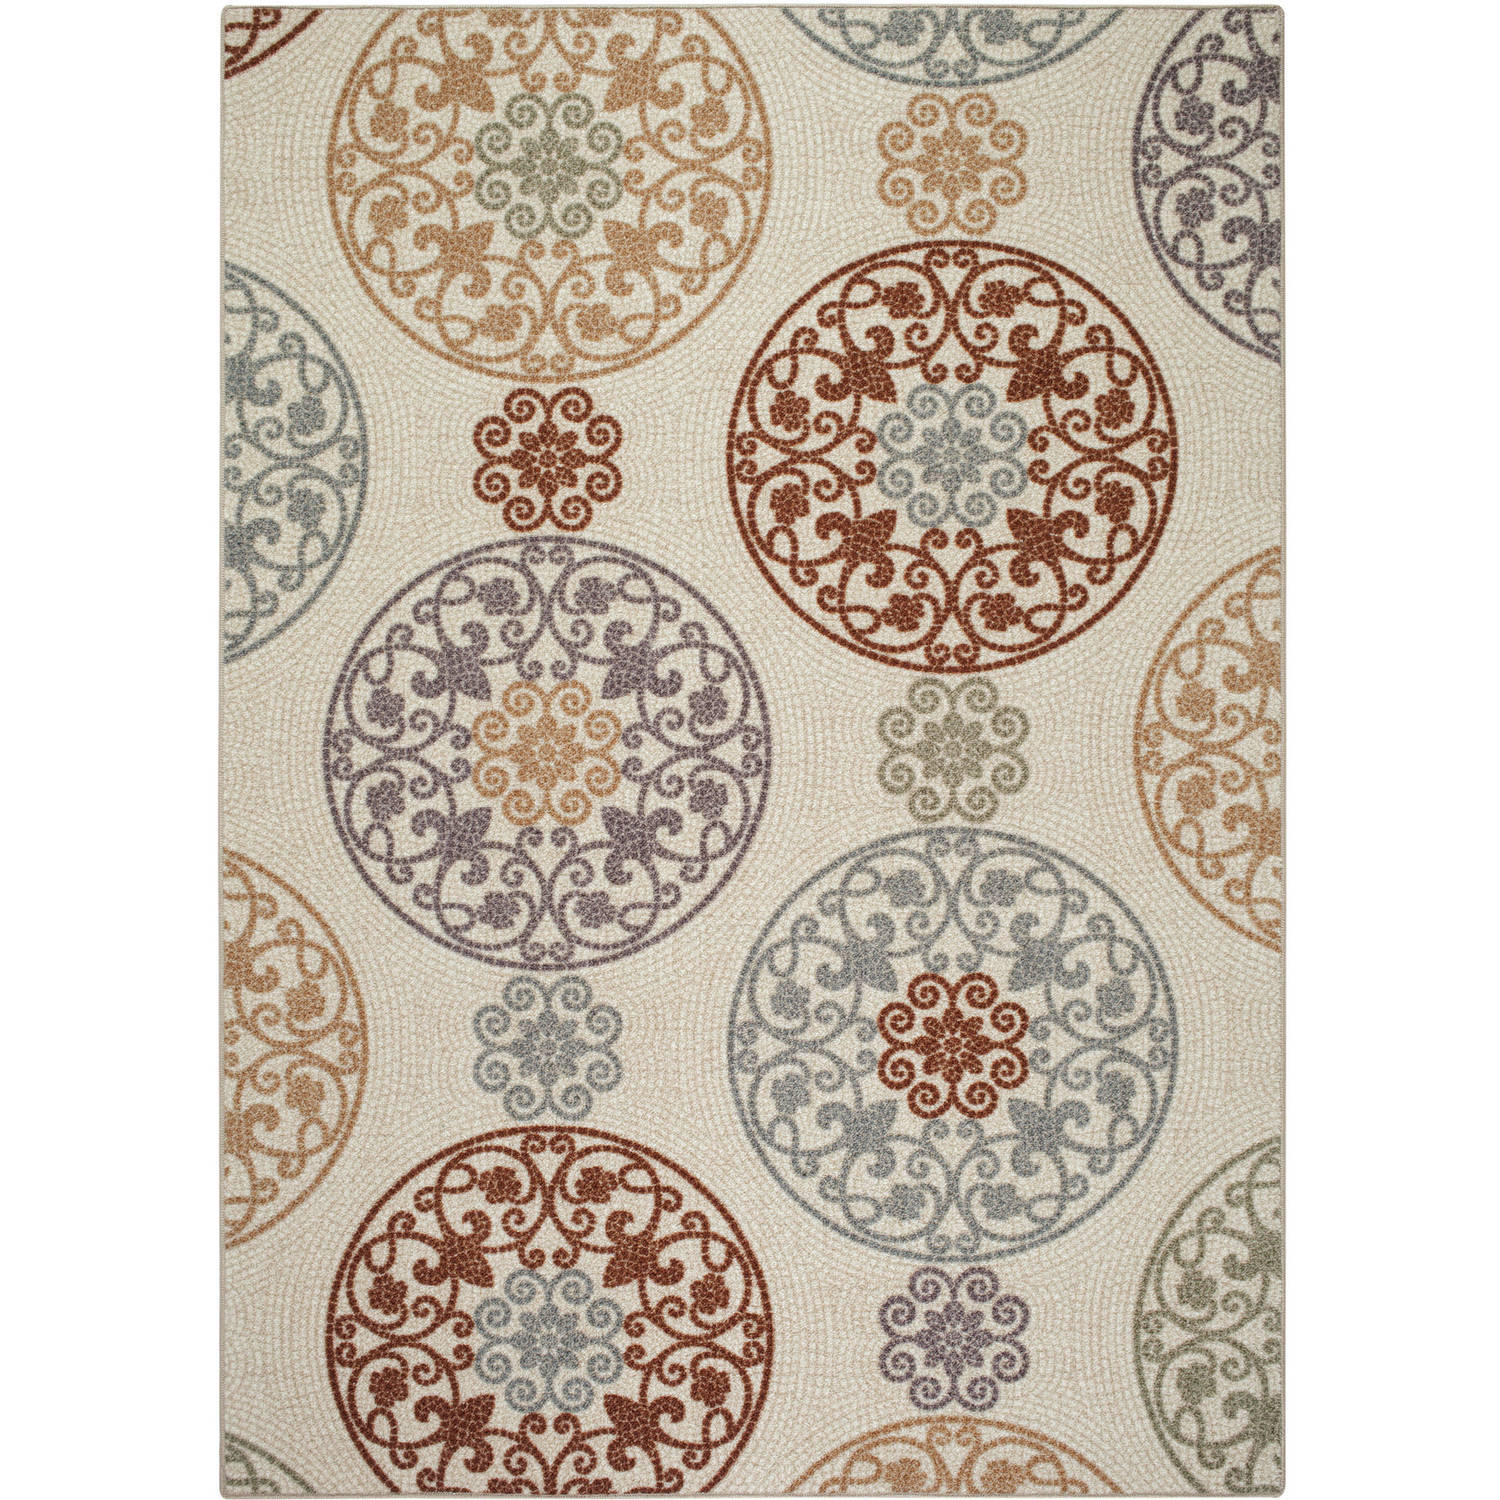 Mainstays Mosaic Nylon Printed Rug, Tan Multi